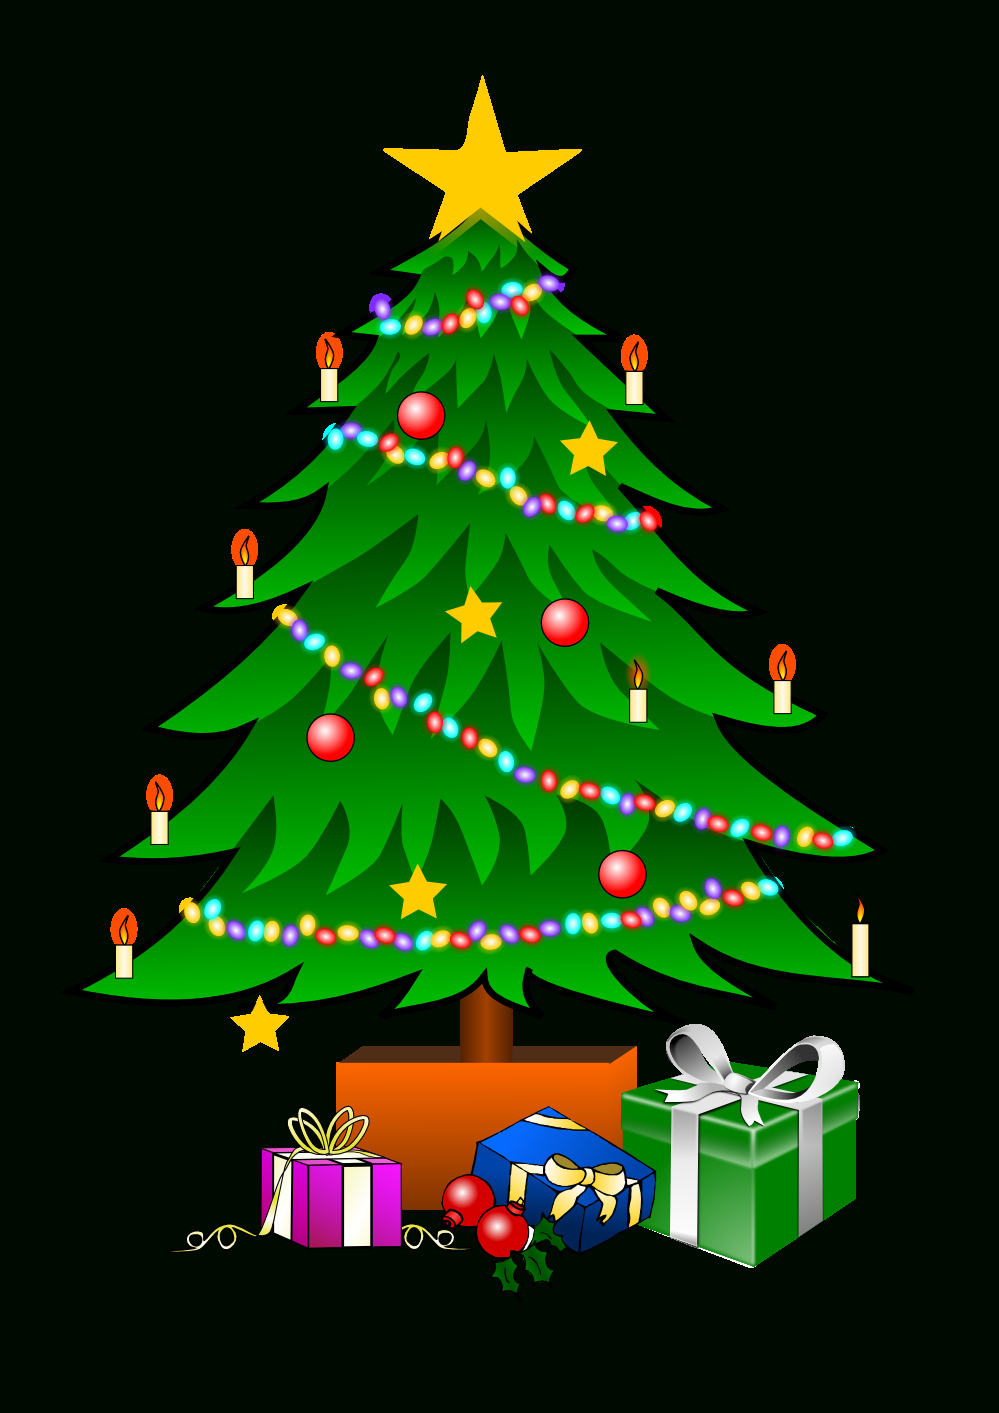 Free Christmas Tree Pics Free, Download Free Clip Art, Free Clip Art - Free Printable Christmas Tree Images